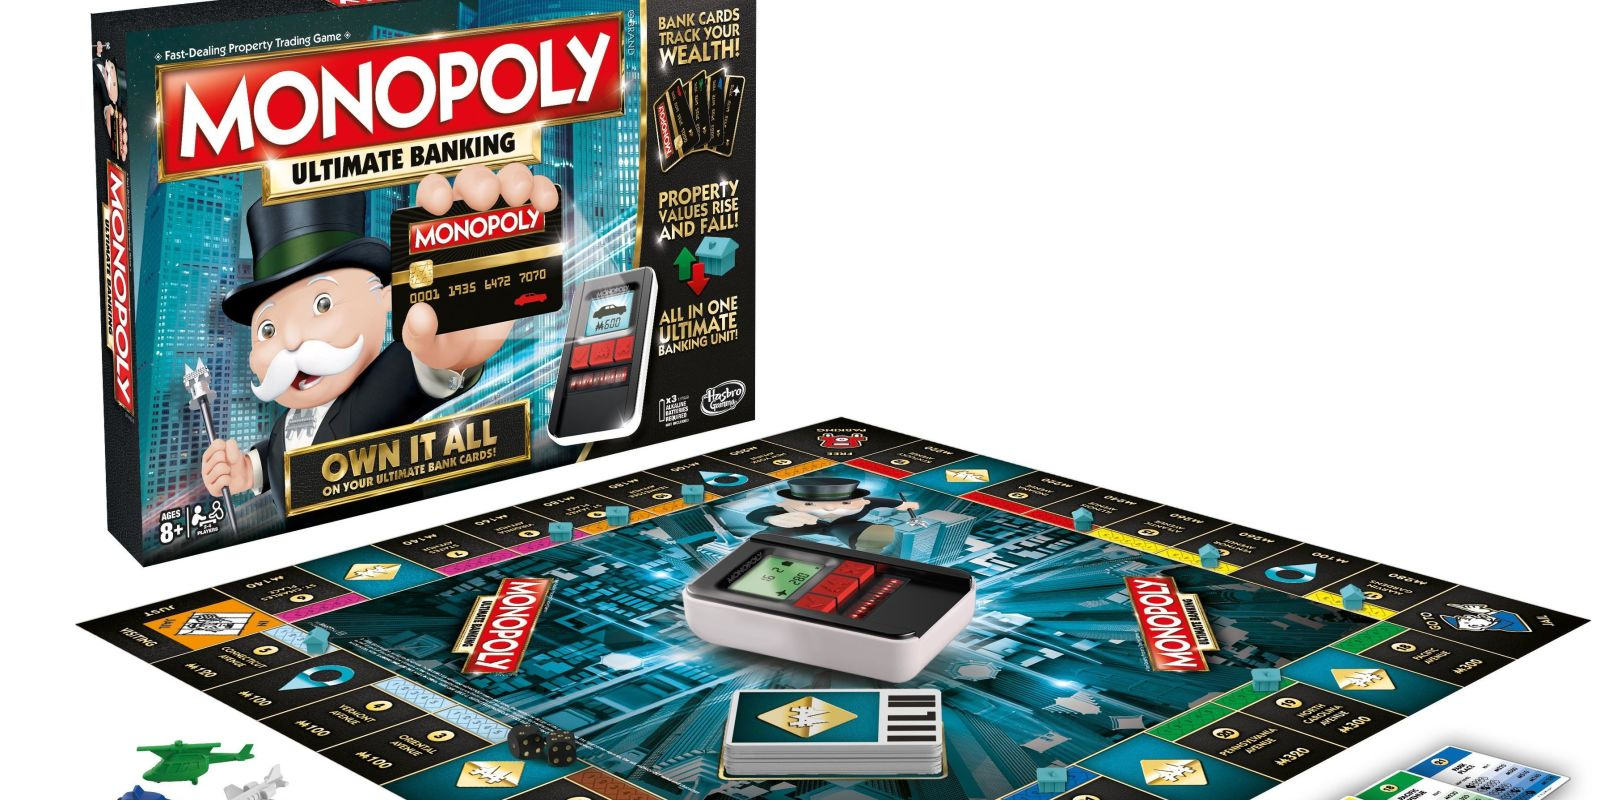 Monopoly Releases Ultimate Banking Edition